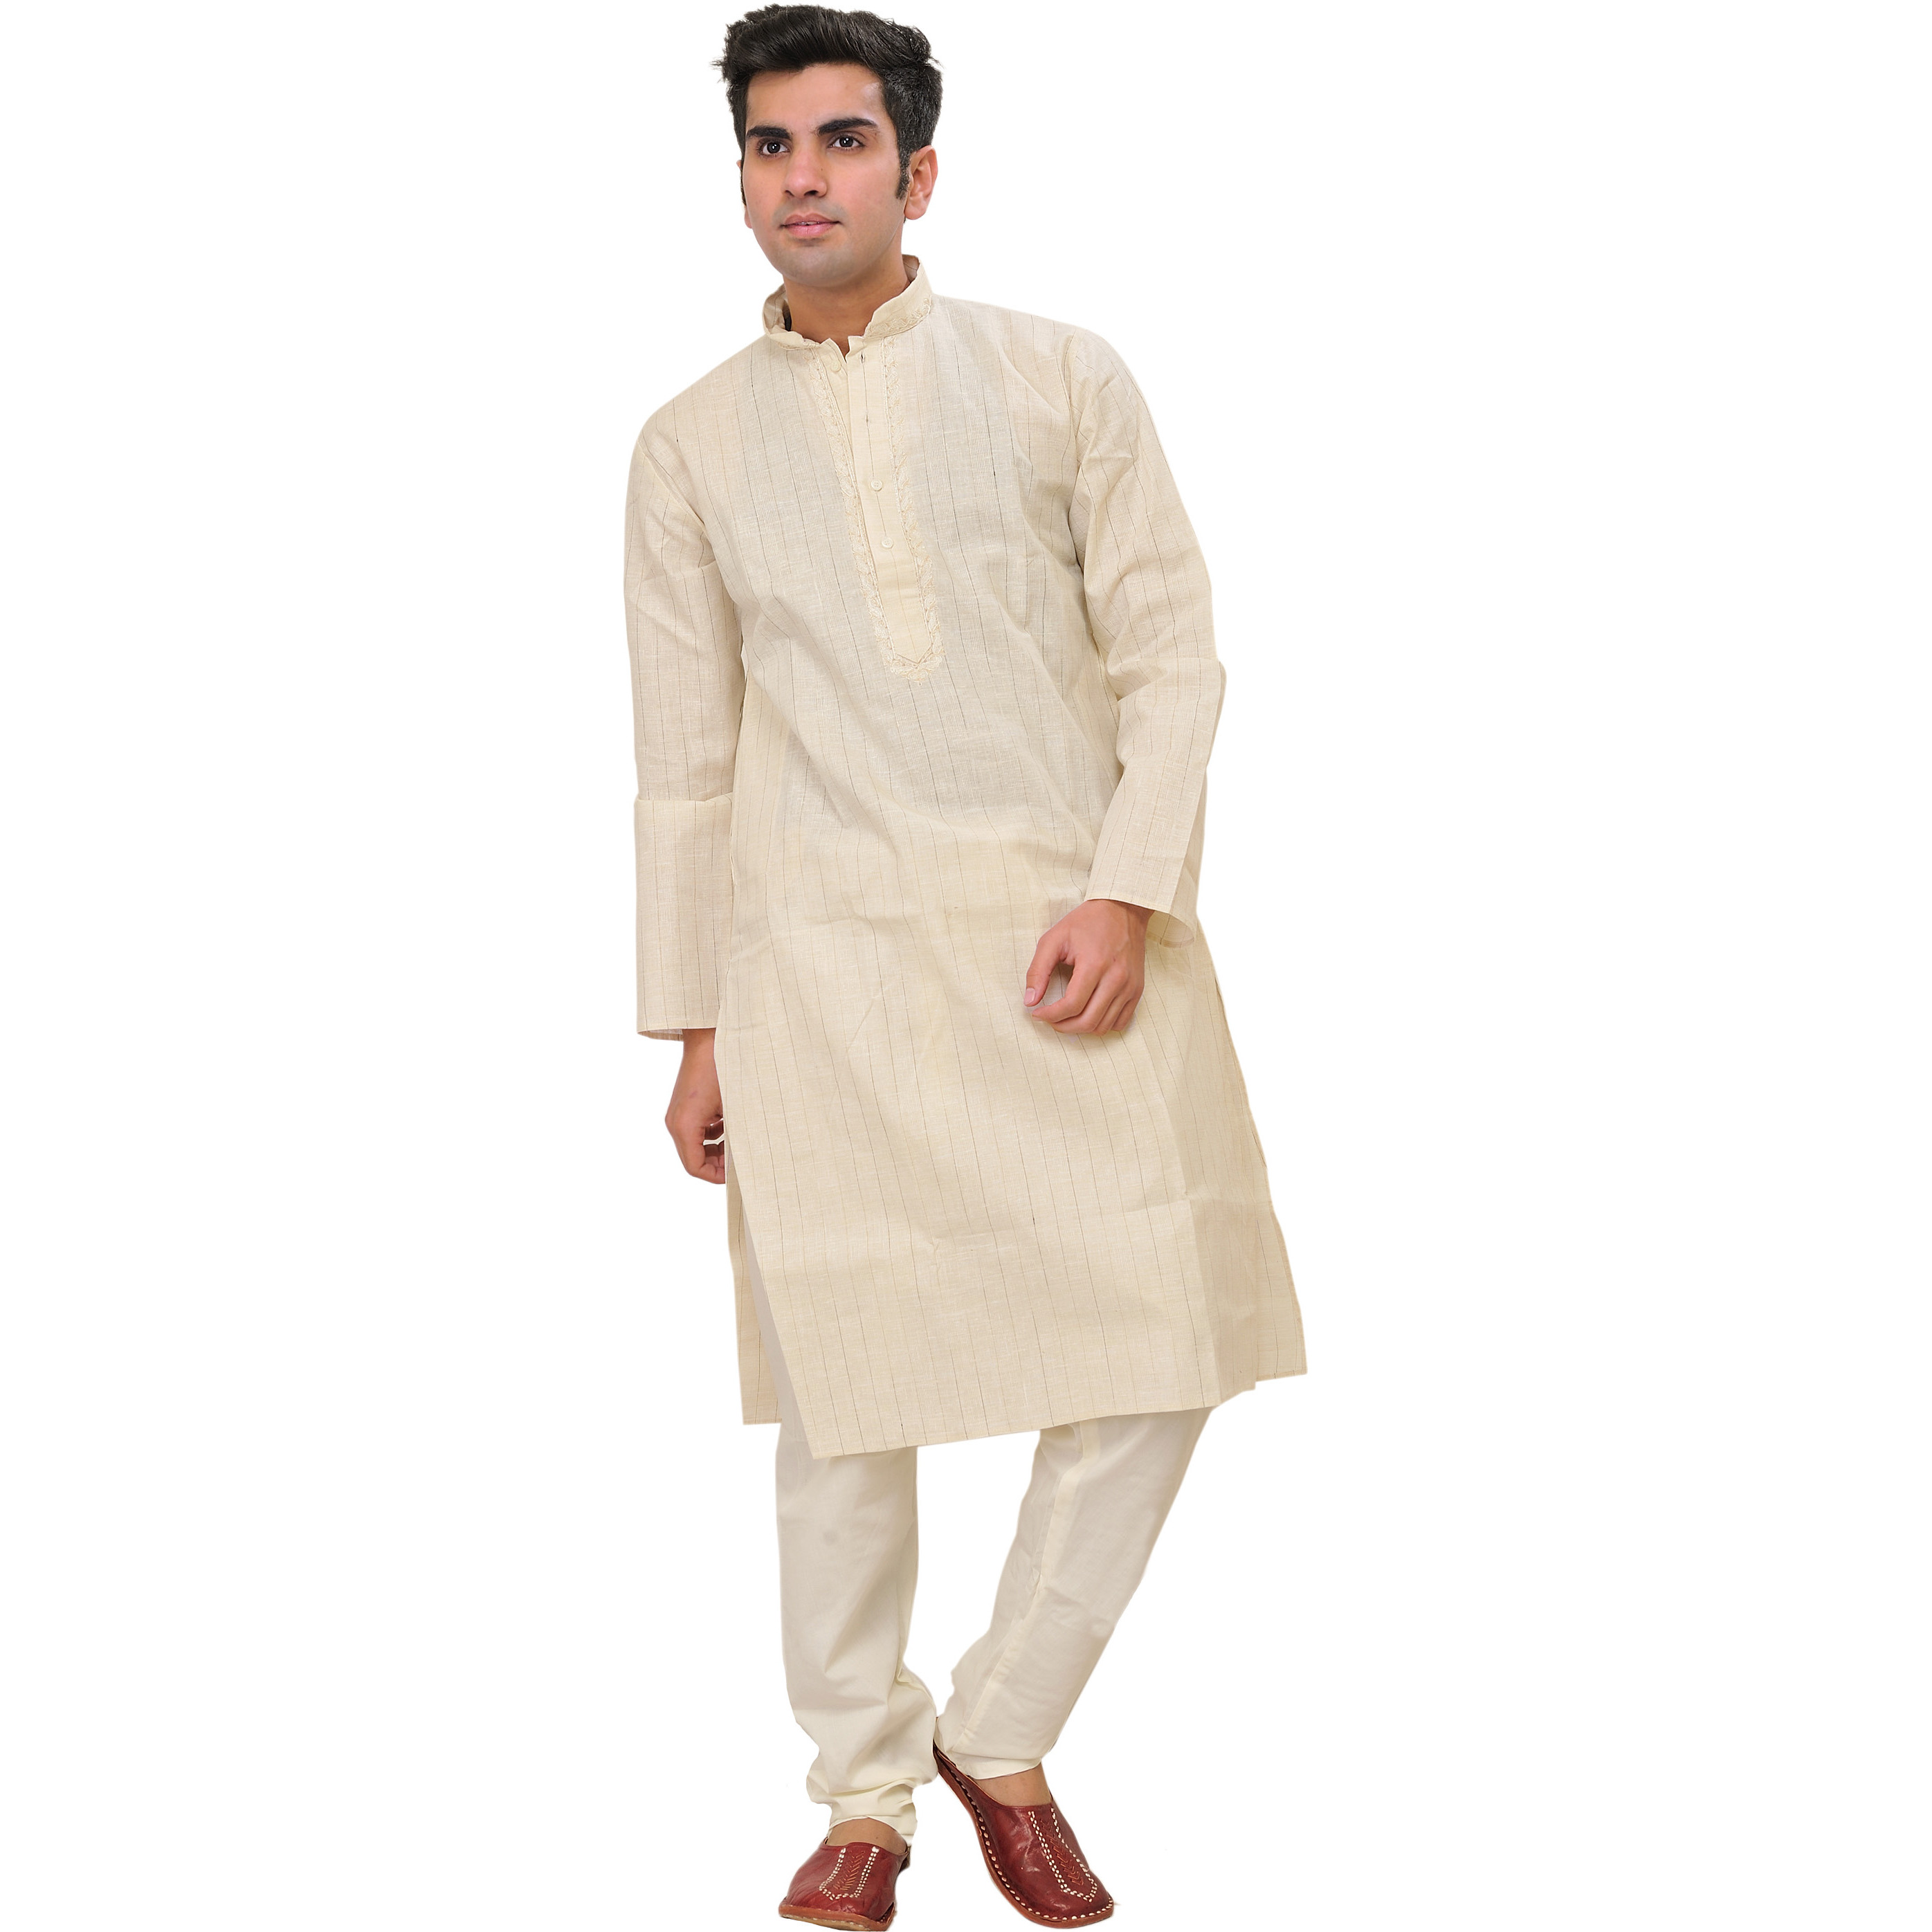 Cream Kurta Pajama Set with Woven Stripes and Embroidery on Neck